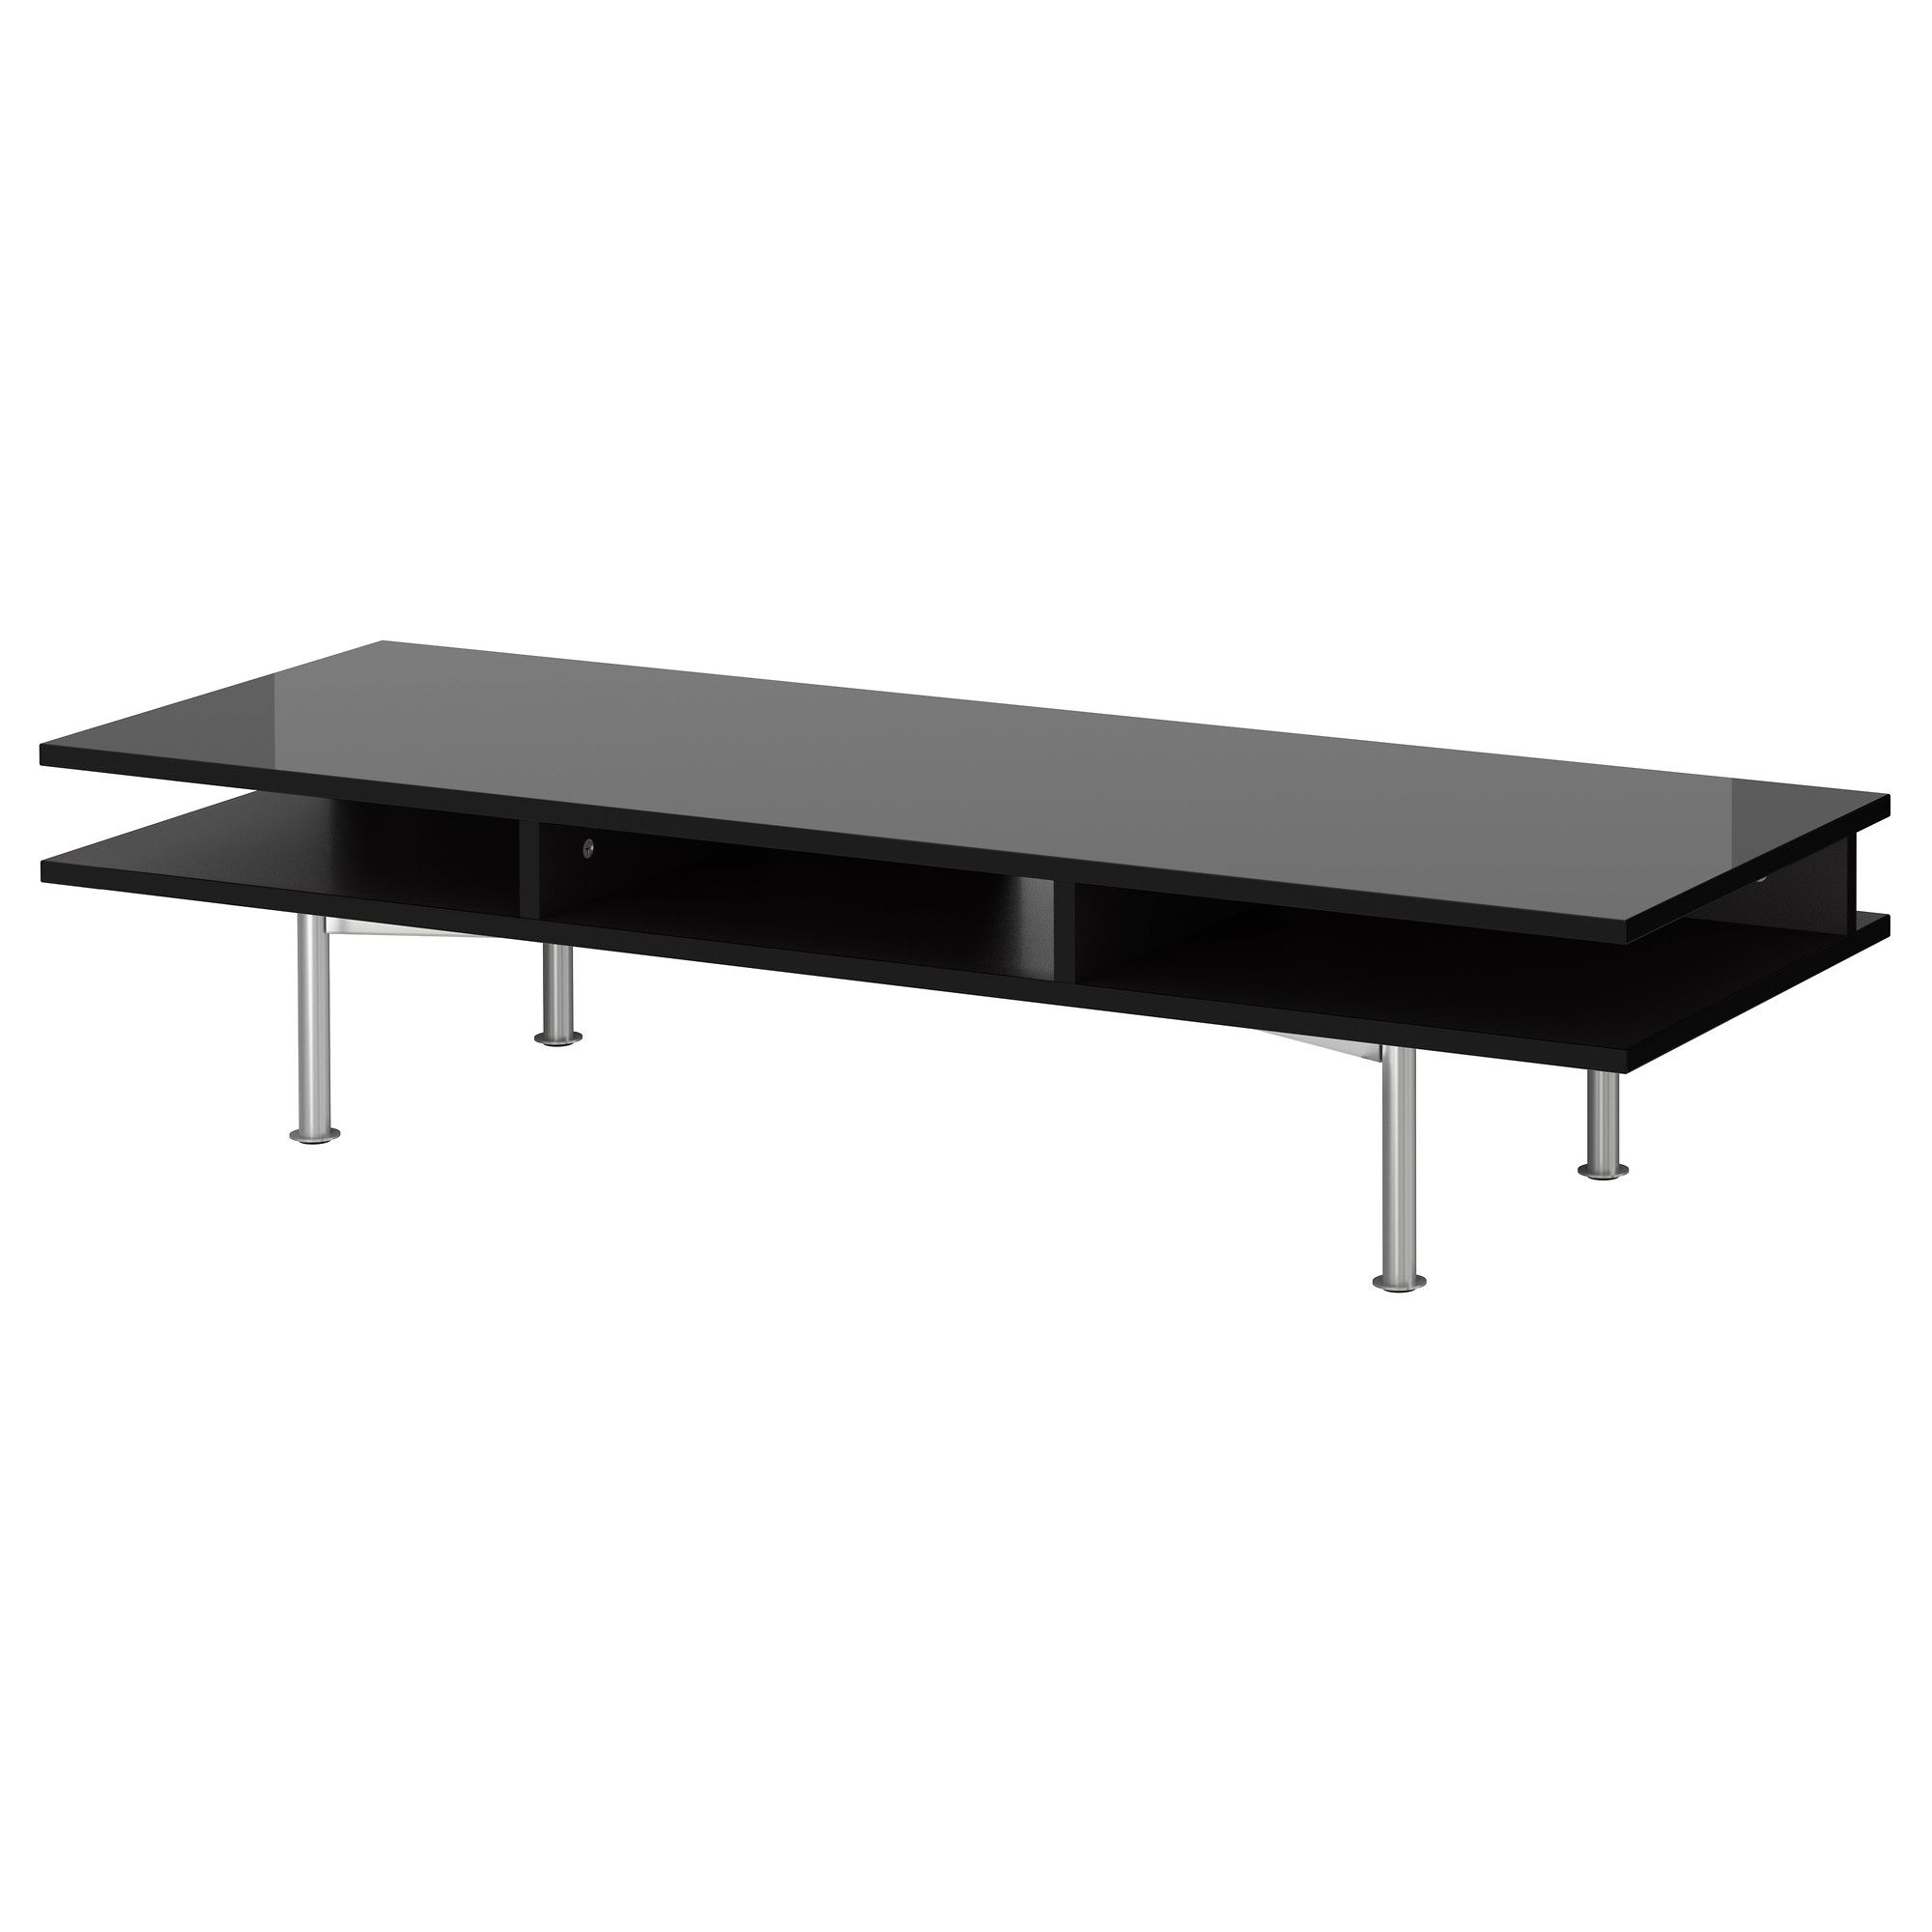 Affordable tofteryd tv bench highgloss black ikea given to - Ikea table tv ...